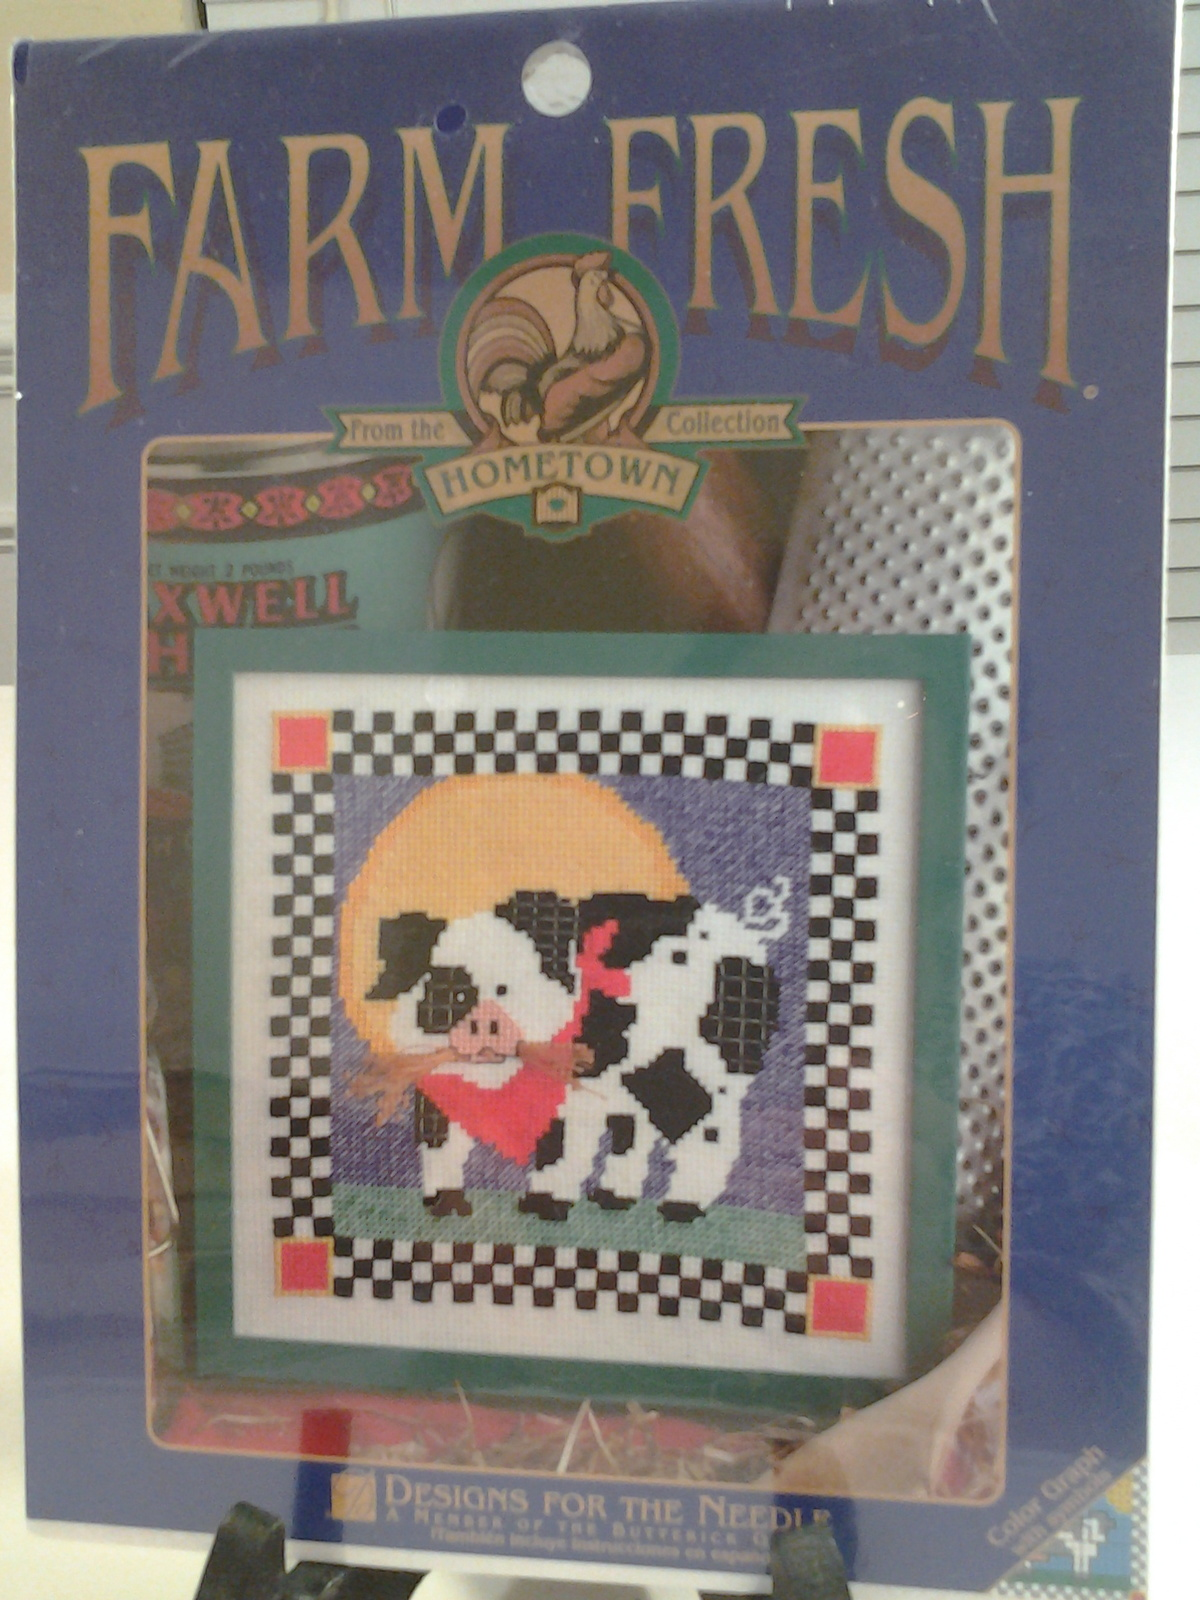 """Designs for the Needle Farm Fresh Piglet Stitch Kit Hometown Collection 7"""" x 7"""""""